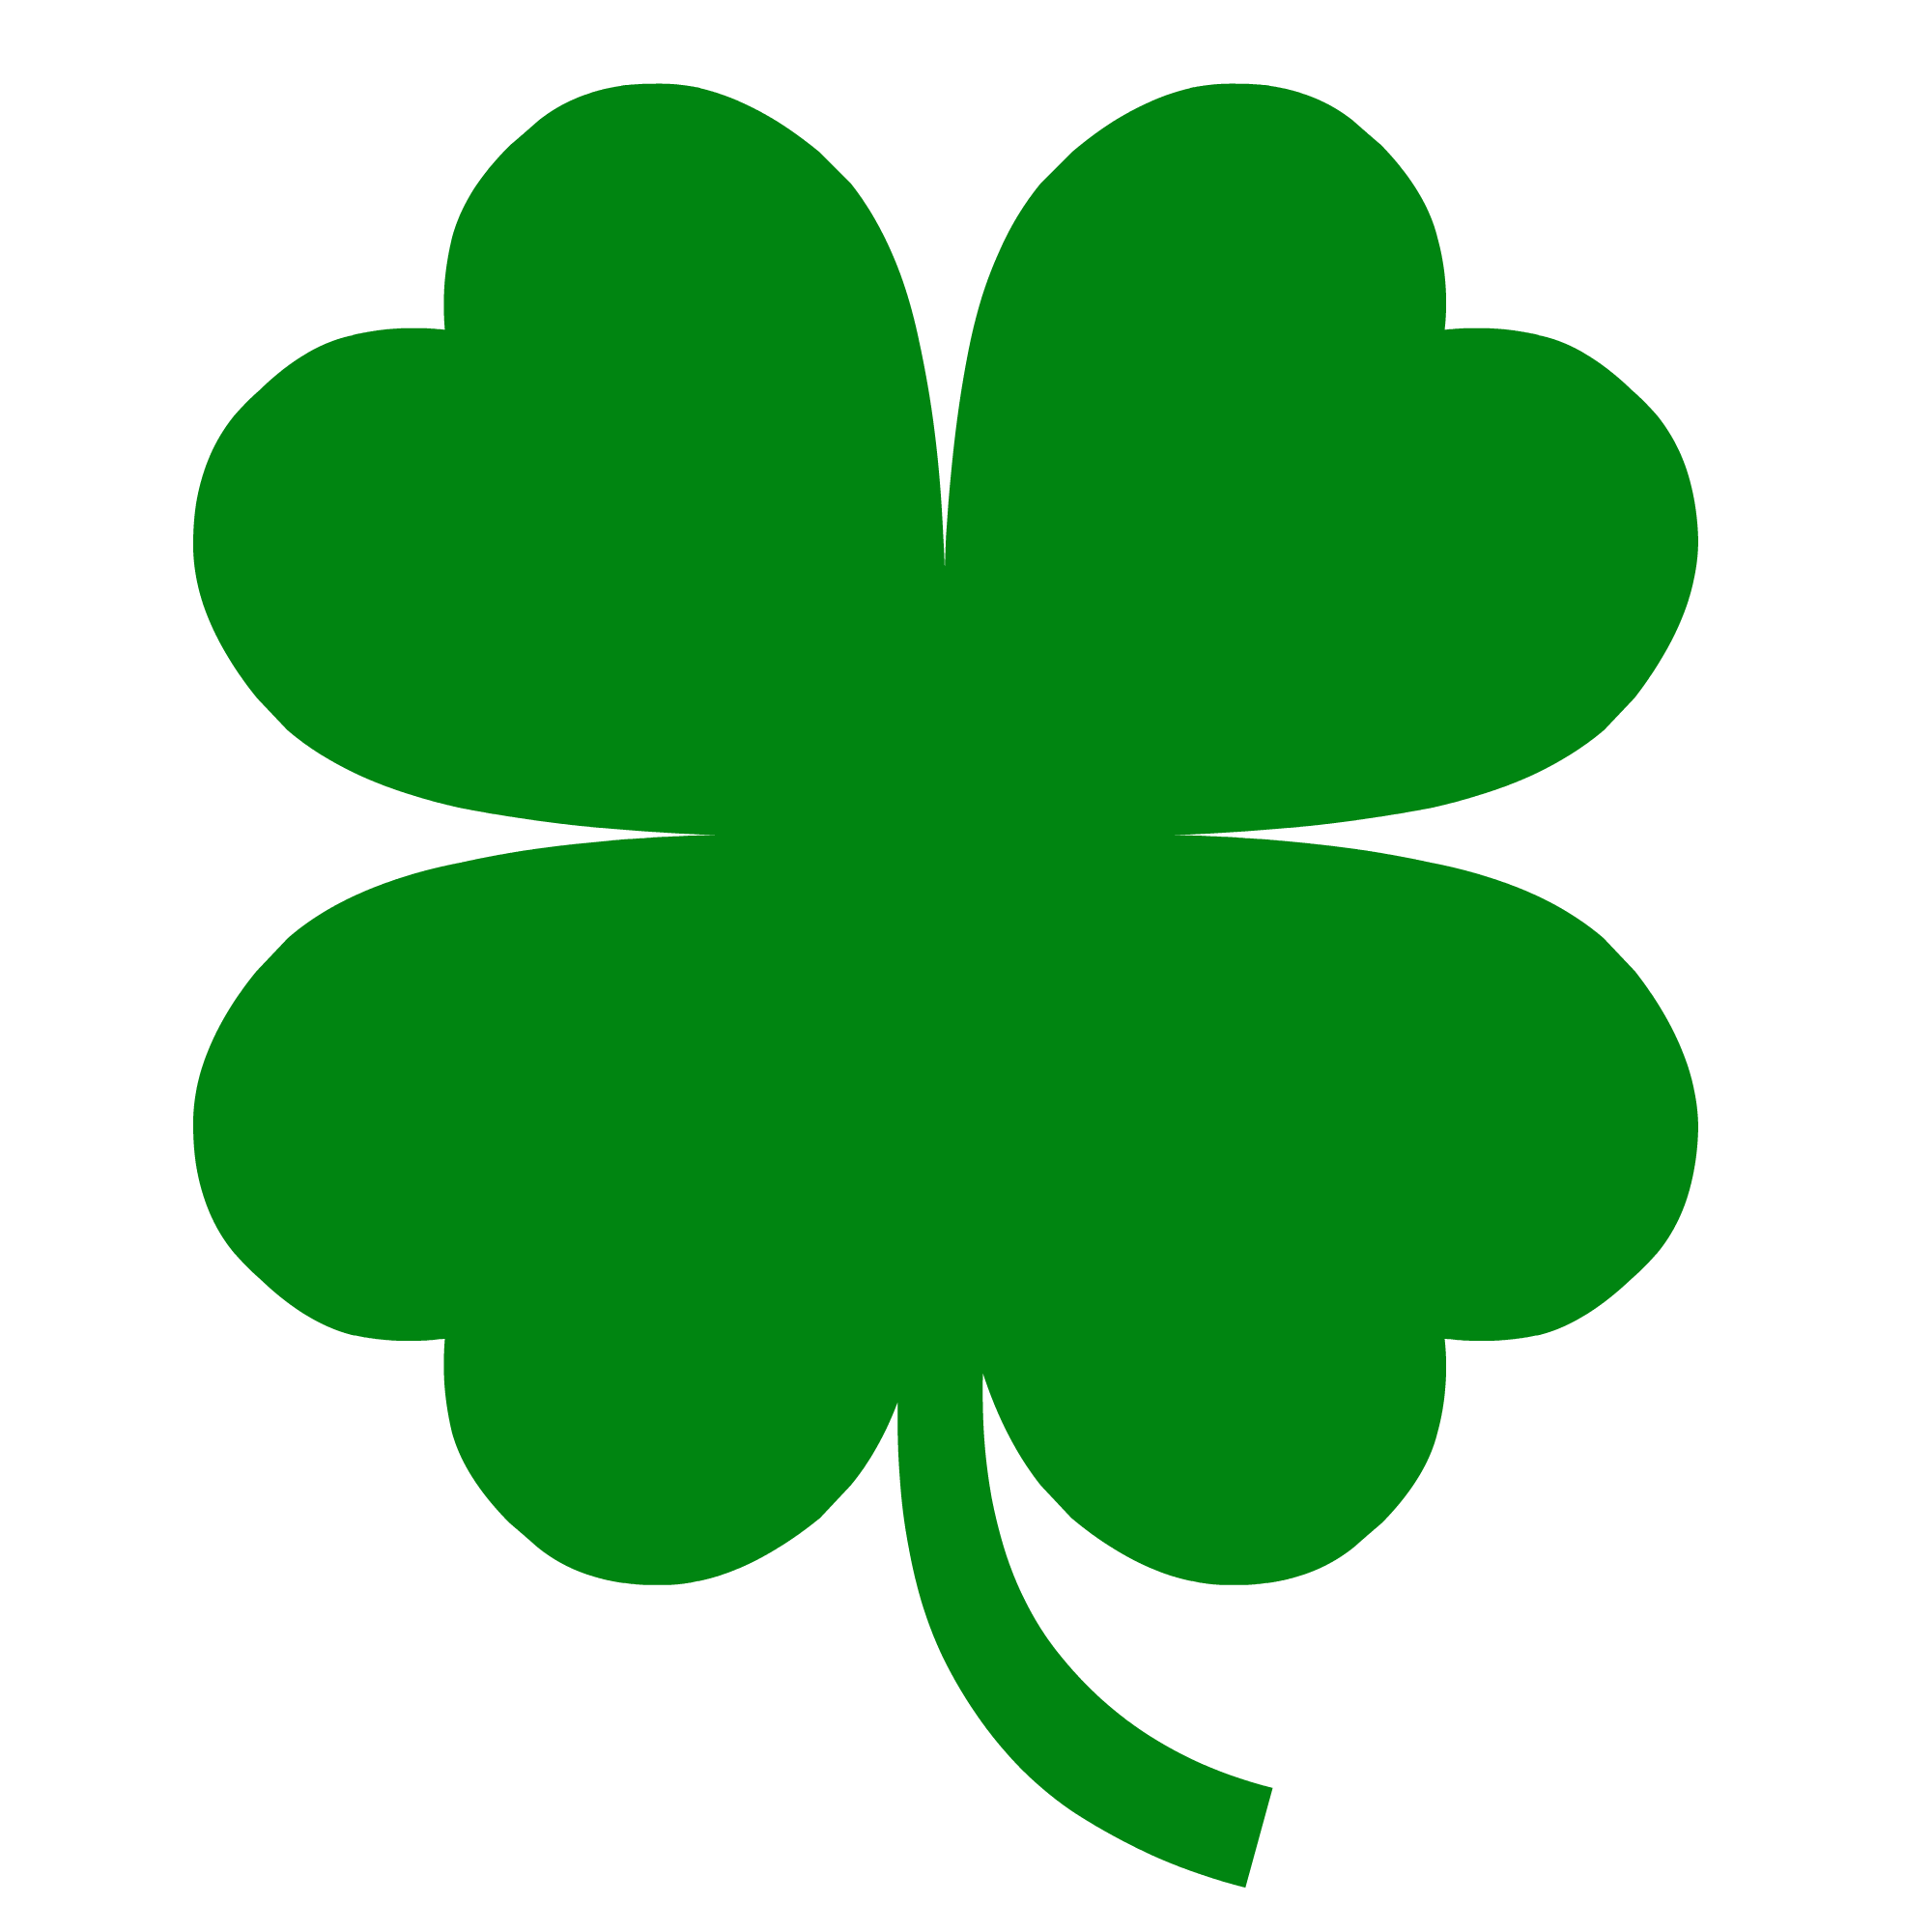 2000x2000 Collection Of Four Leaf Clover Clipart High Quality, Free